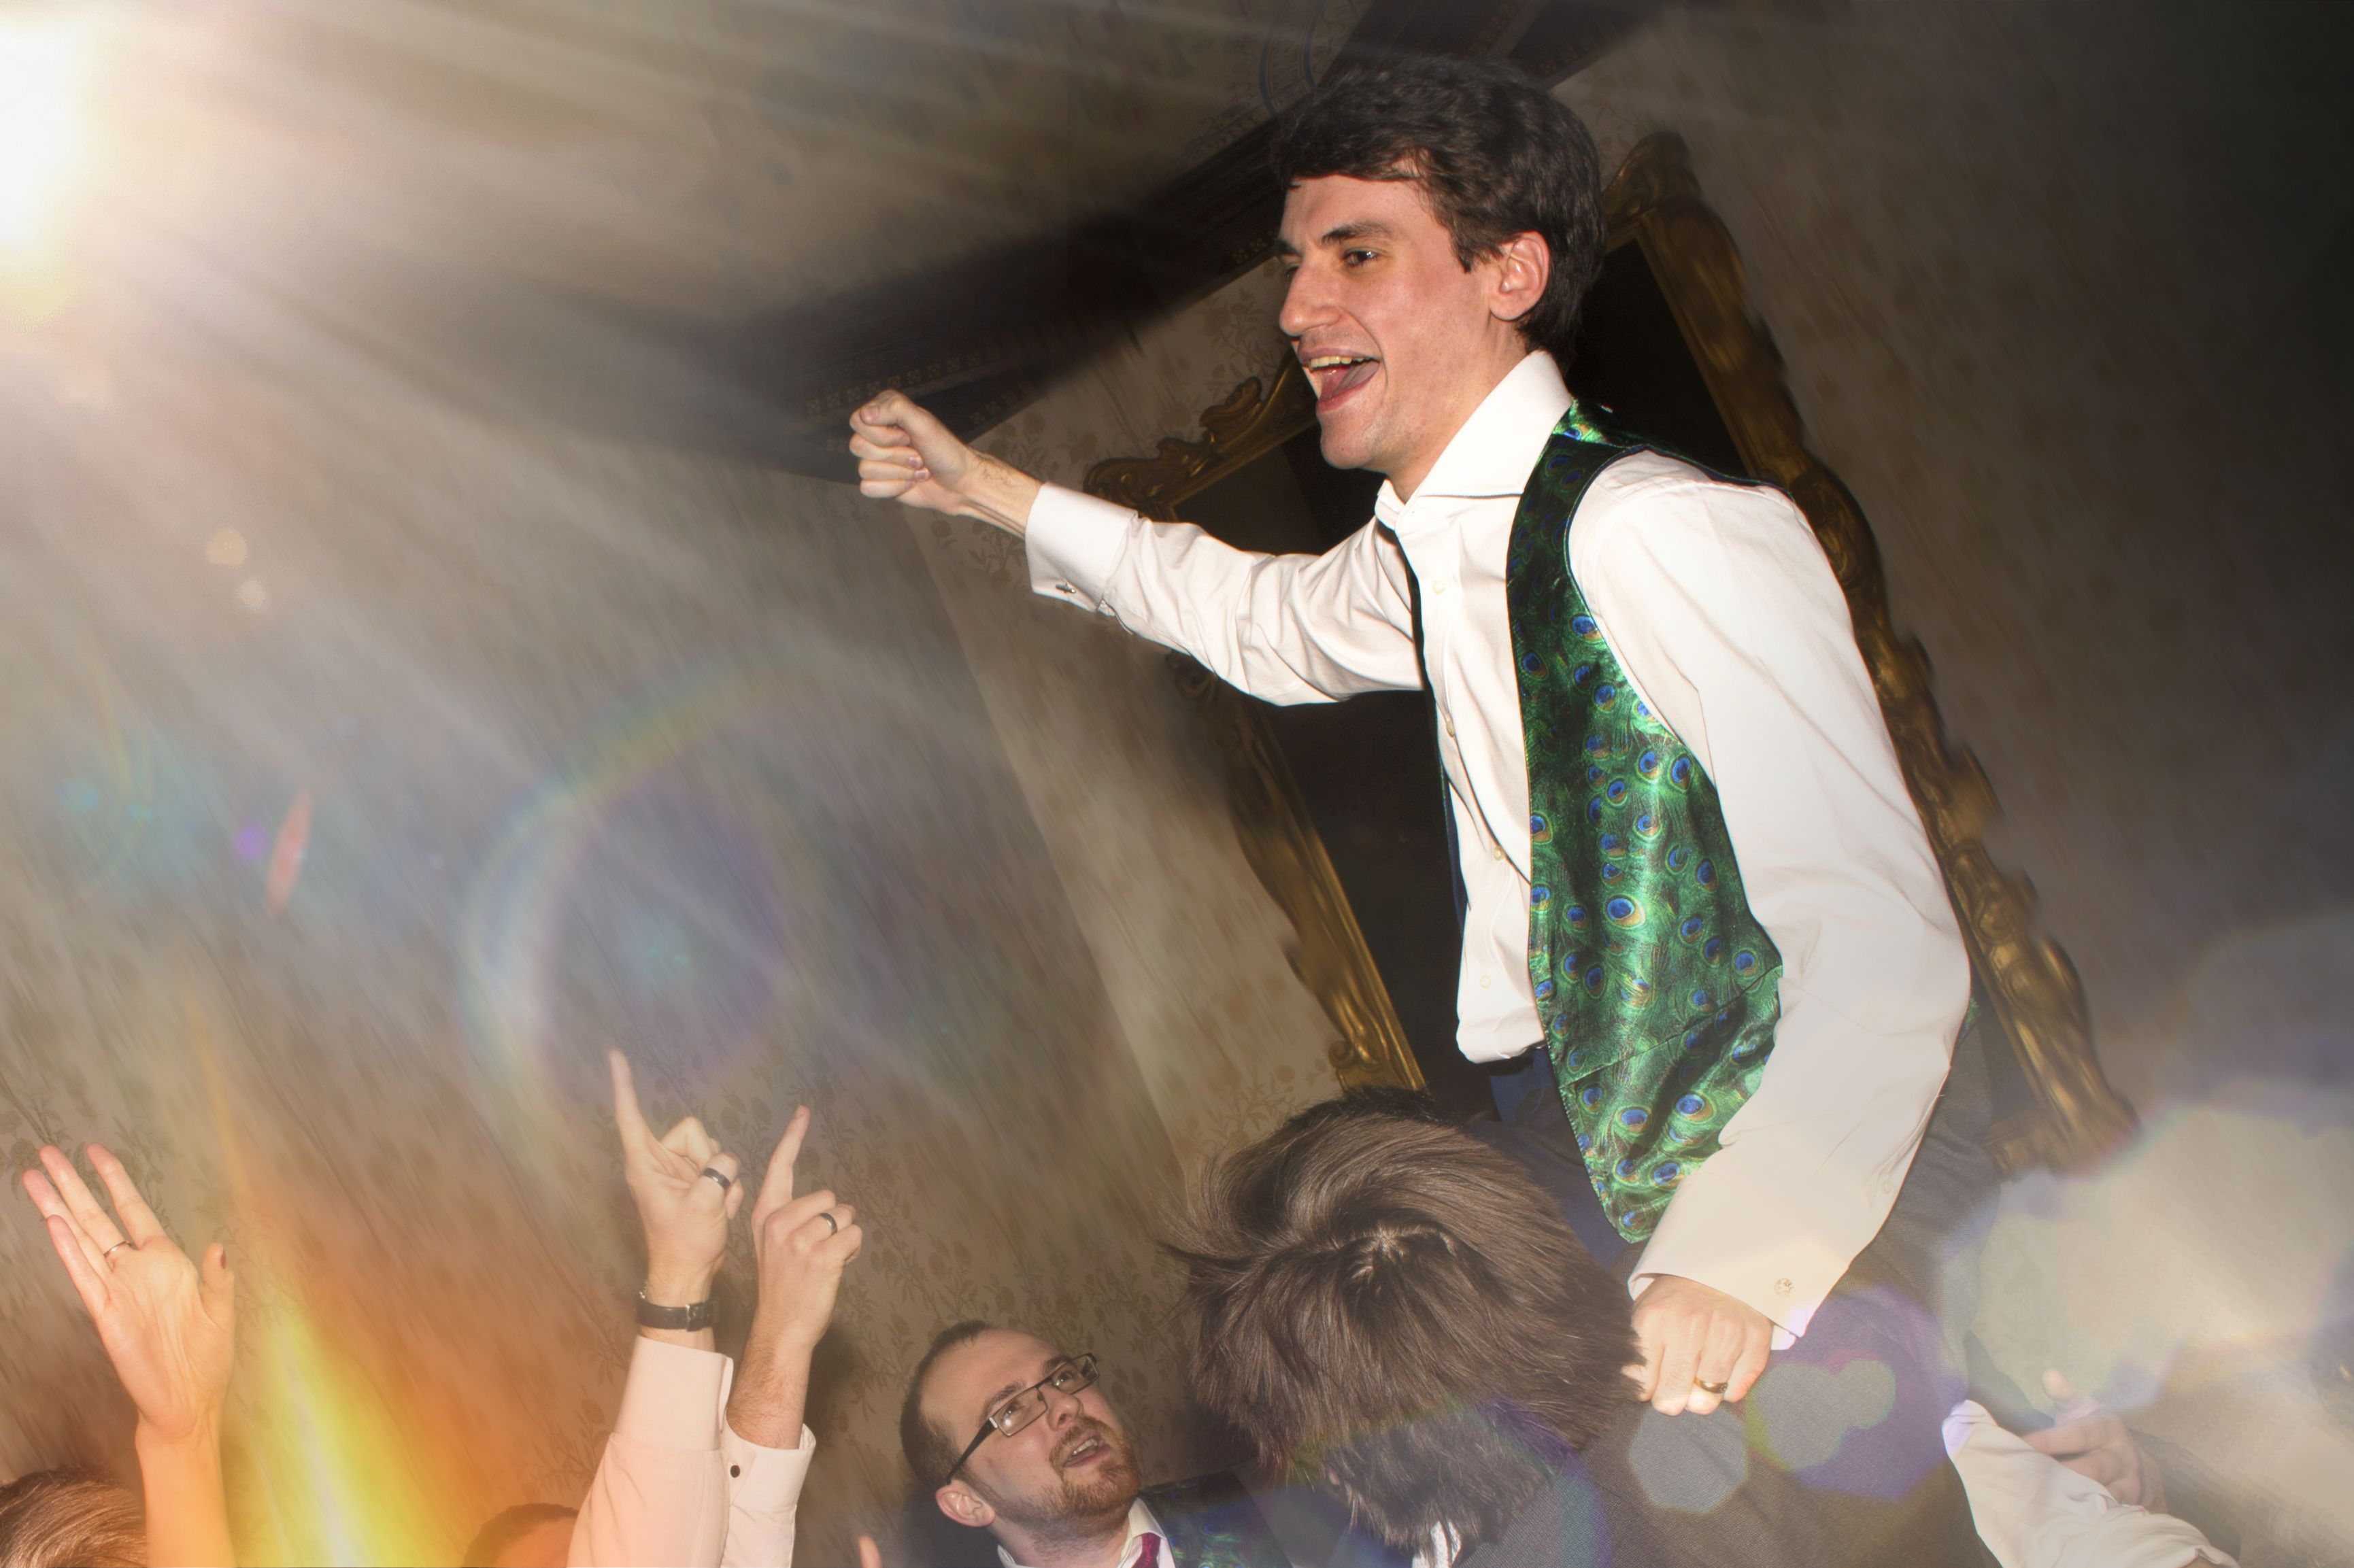 Groom lifted on guests shoulders